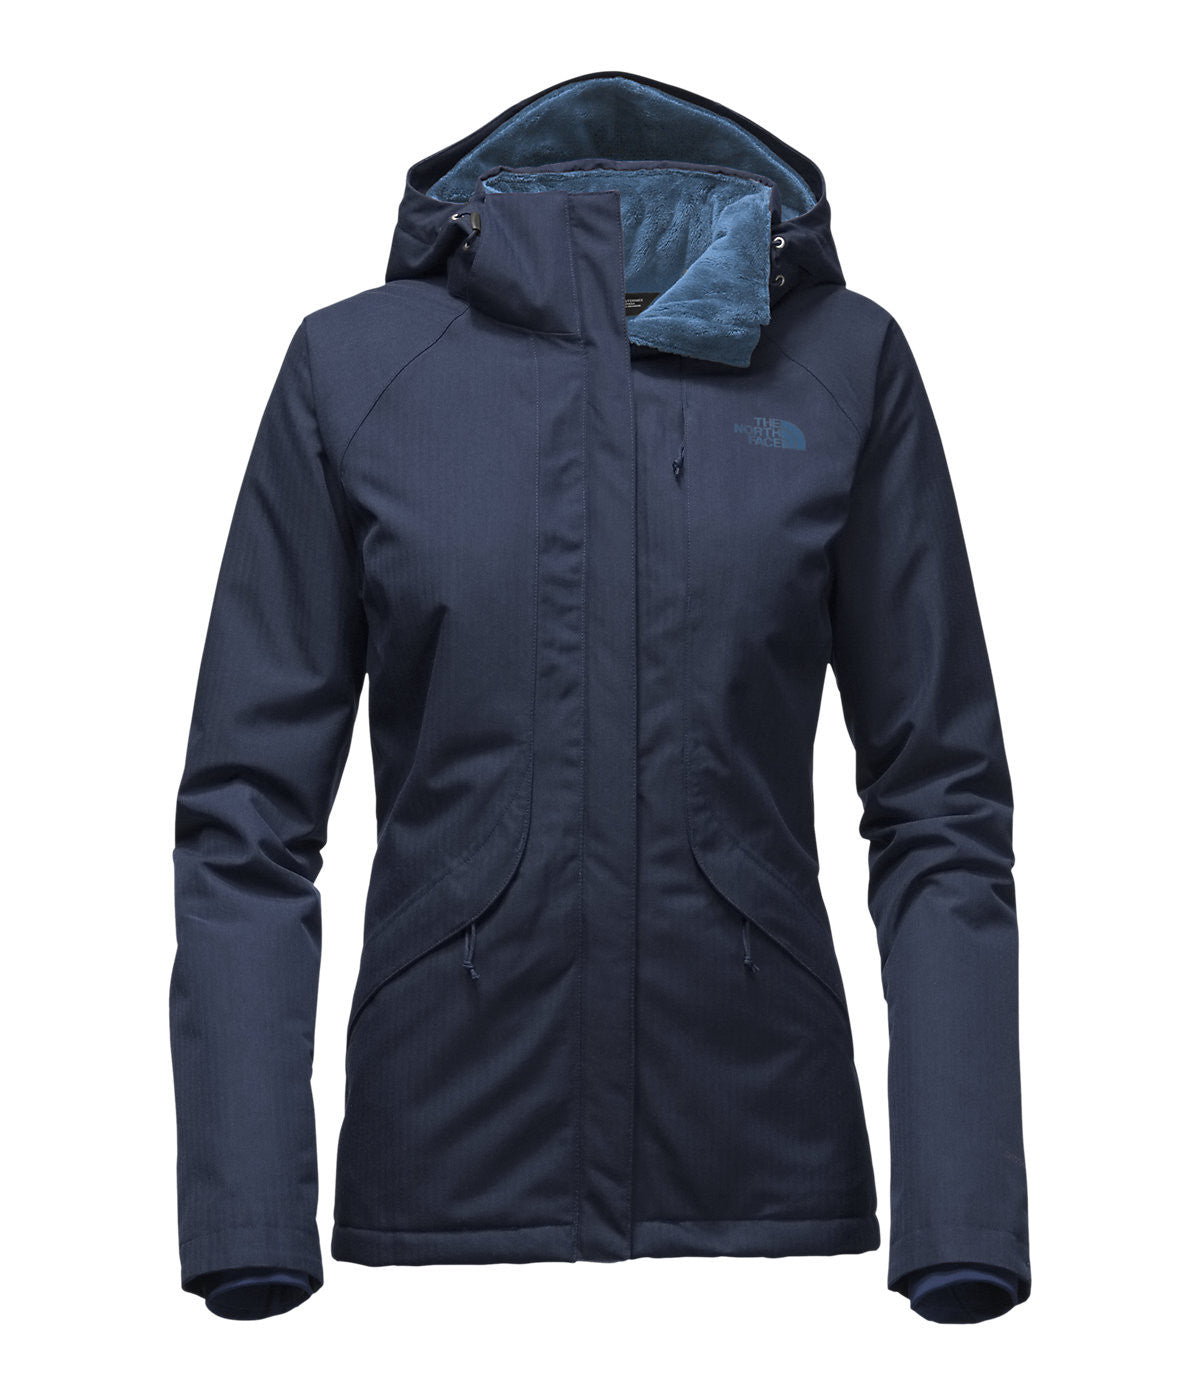 54a5283b4 The North Face Inlux Insulated Jacket - Women's